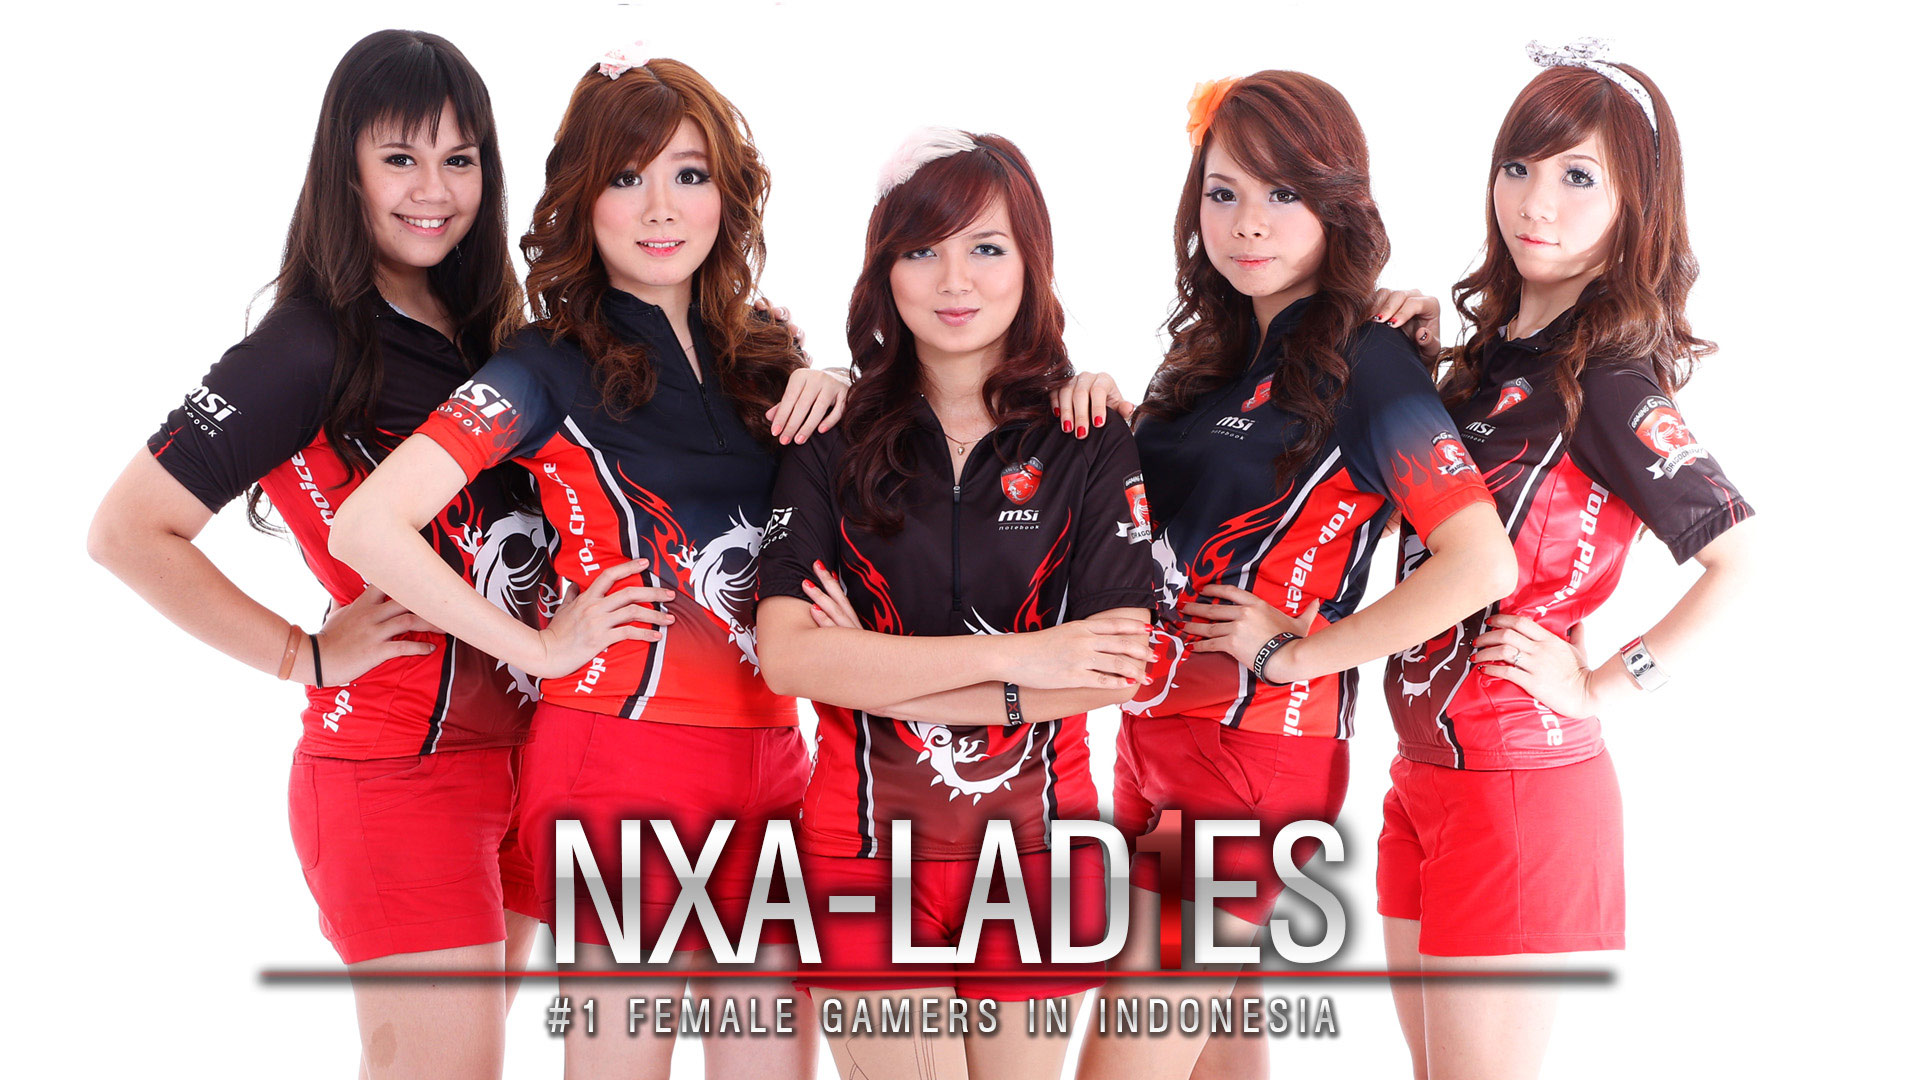 nxa_ladies_tambahan